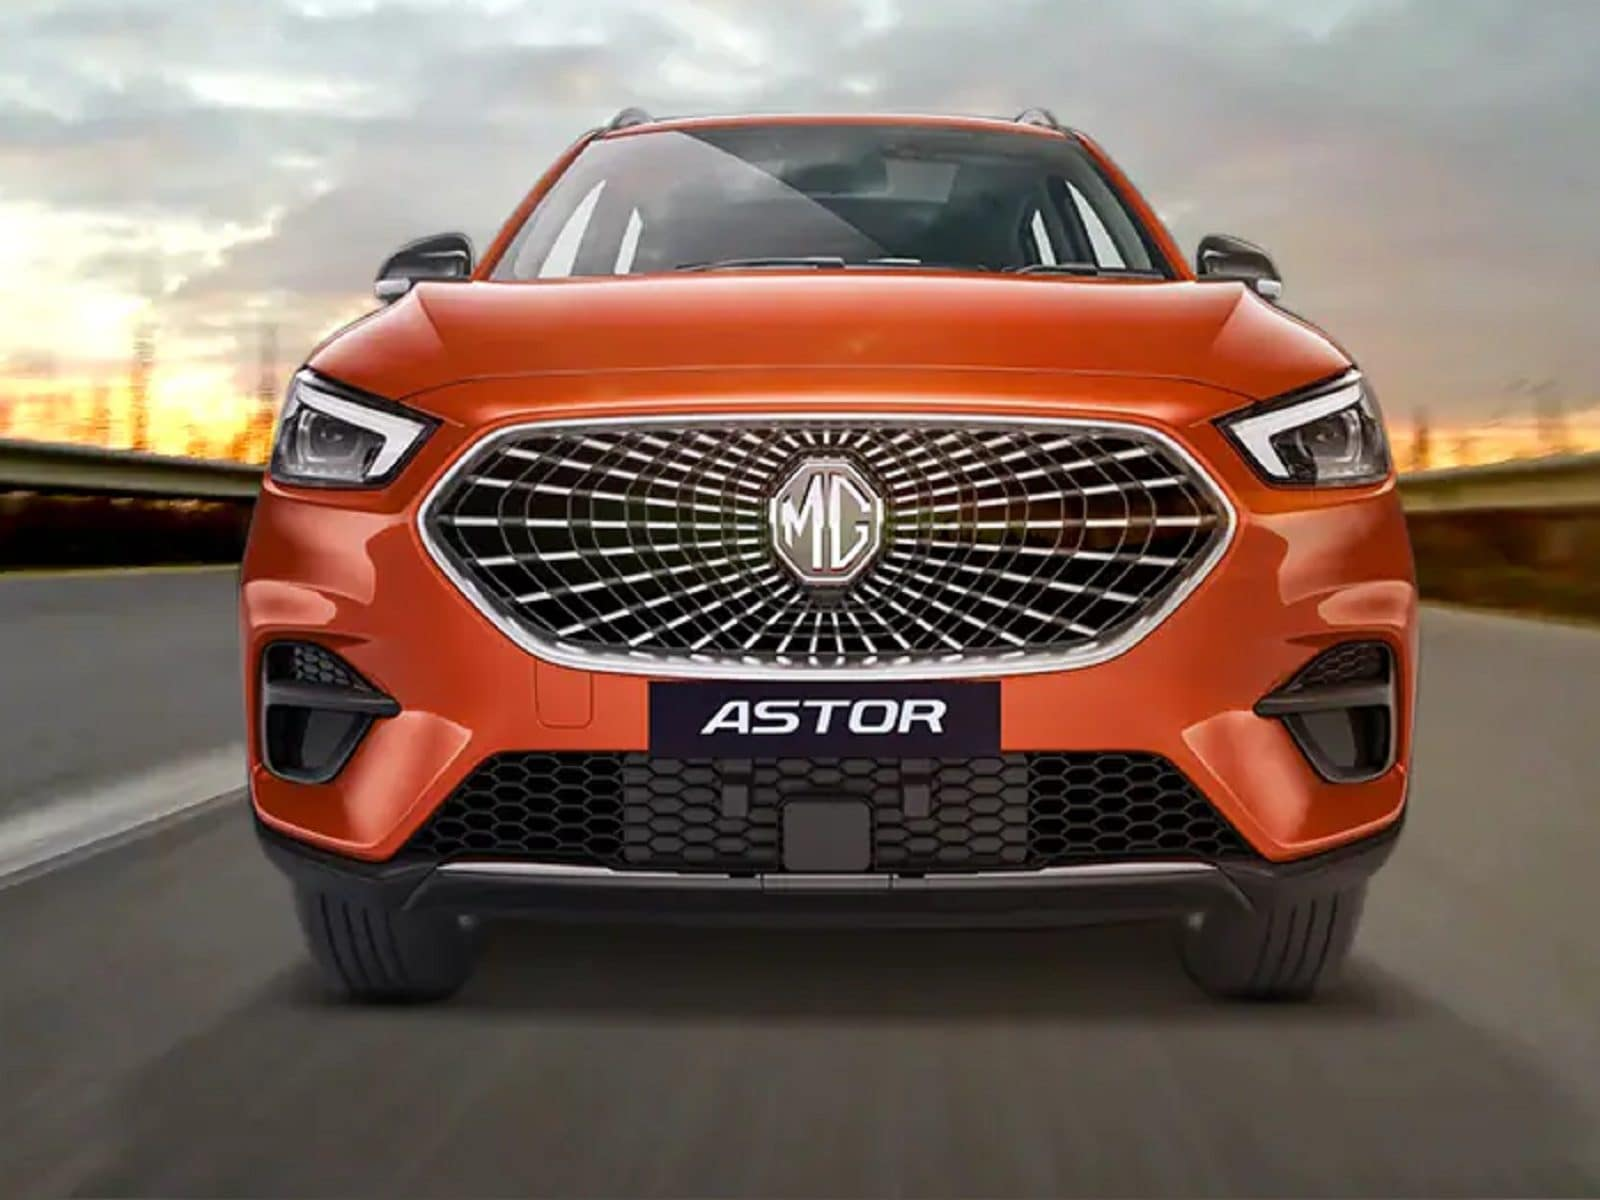 The MG Astor is a mid-size SUV with a personal AI system and ADAS